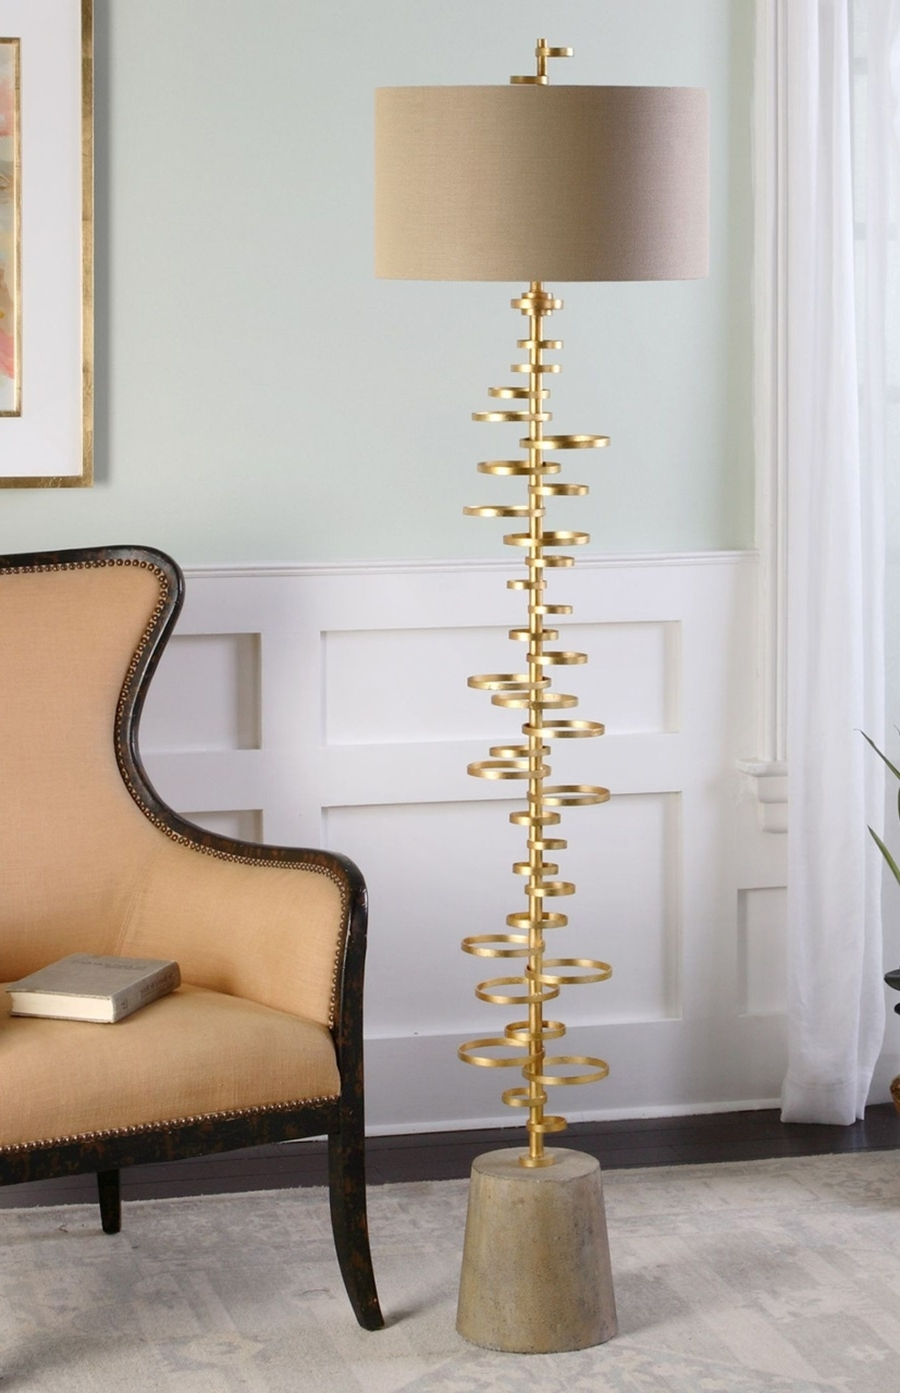 Well Known Wayfair Living Room Table Lamps Throughout Lamp : Modernloor Lampsor Living Room Wayfair With Table Tray Gold (View 13 of 15)